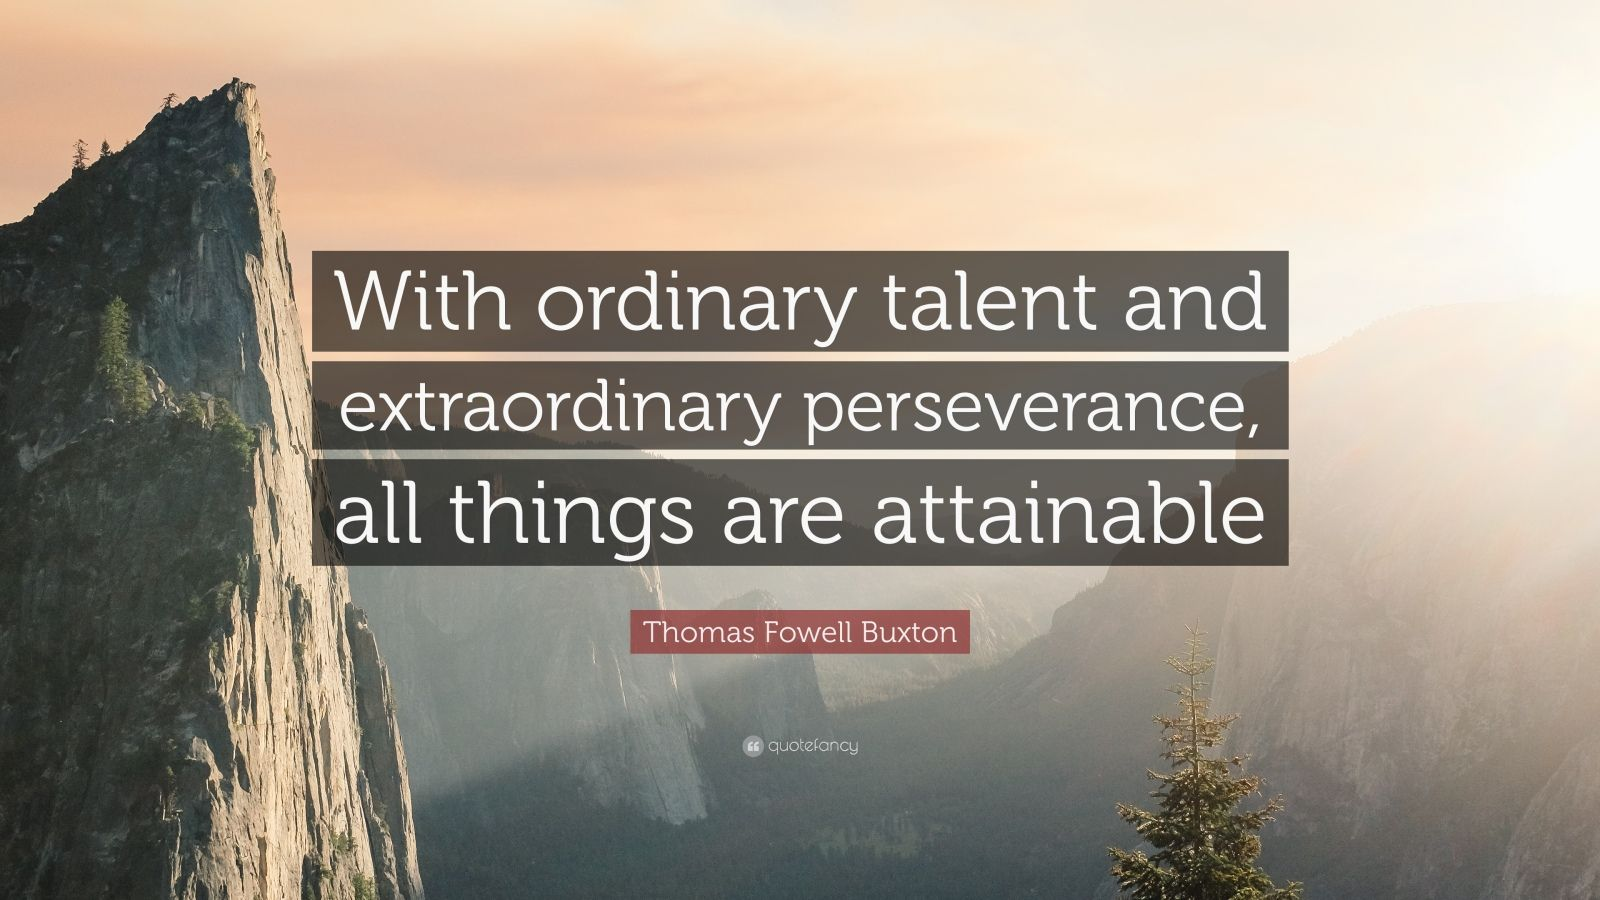 Zen Quote Wallpaper Thomas Fowell Buxton Quote With Ordinary Talent And